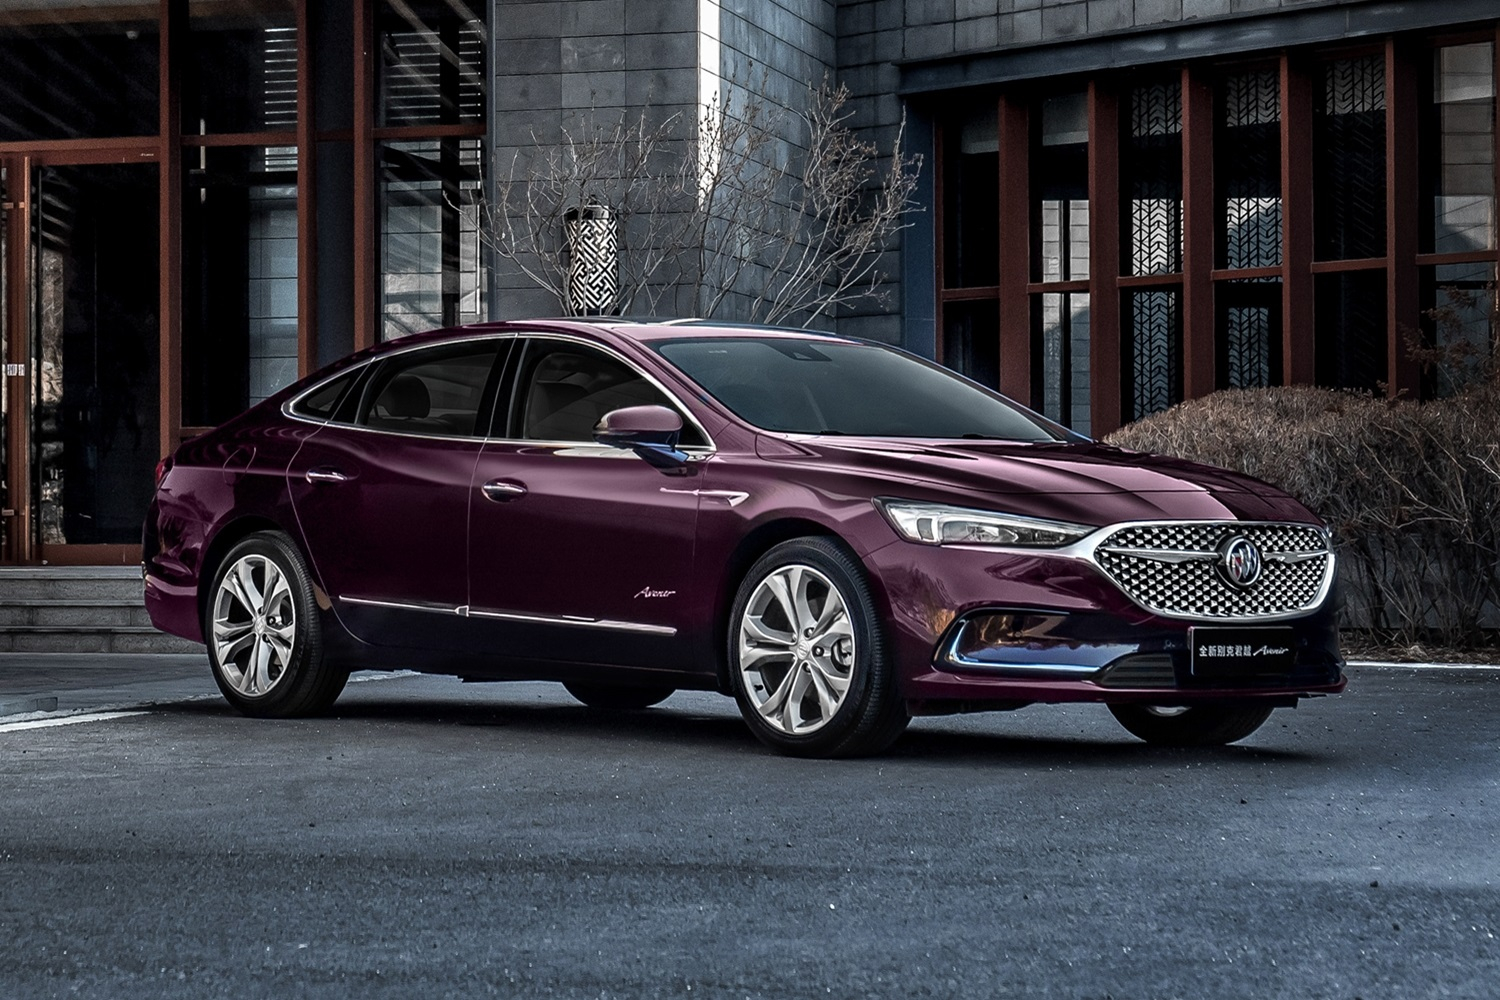 2021 Buick Lacrosse Gets More Refined Than Ever | Gm Authority When Will The 2022 Buick Lacrosse Be Released